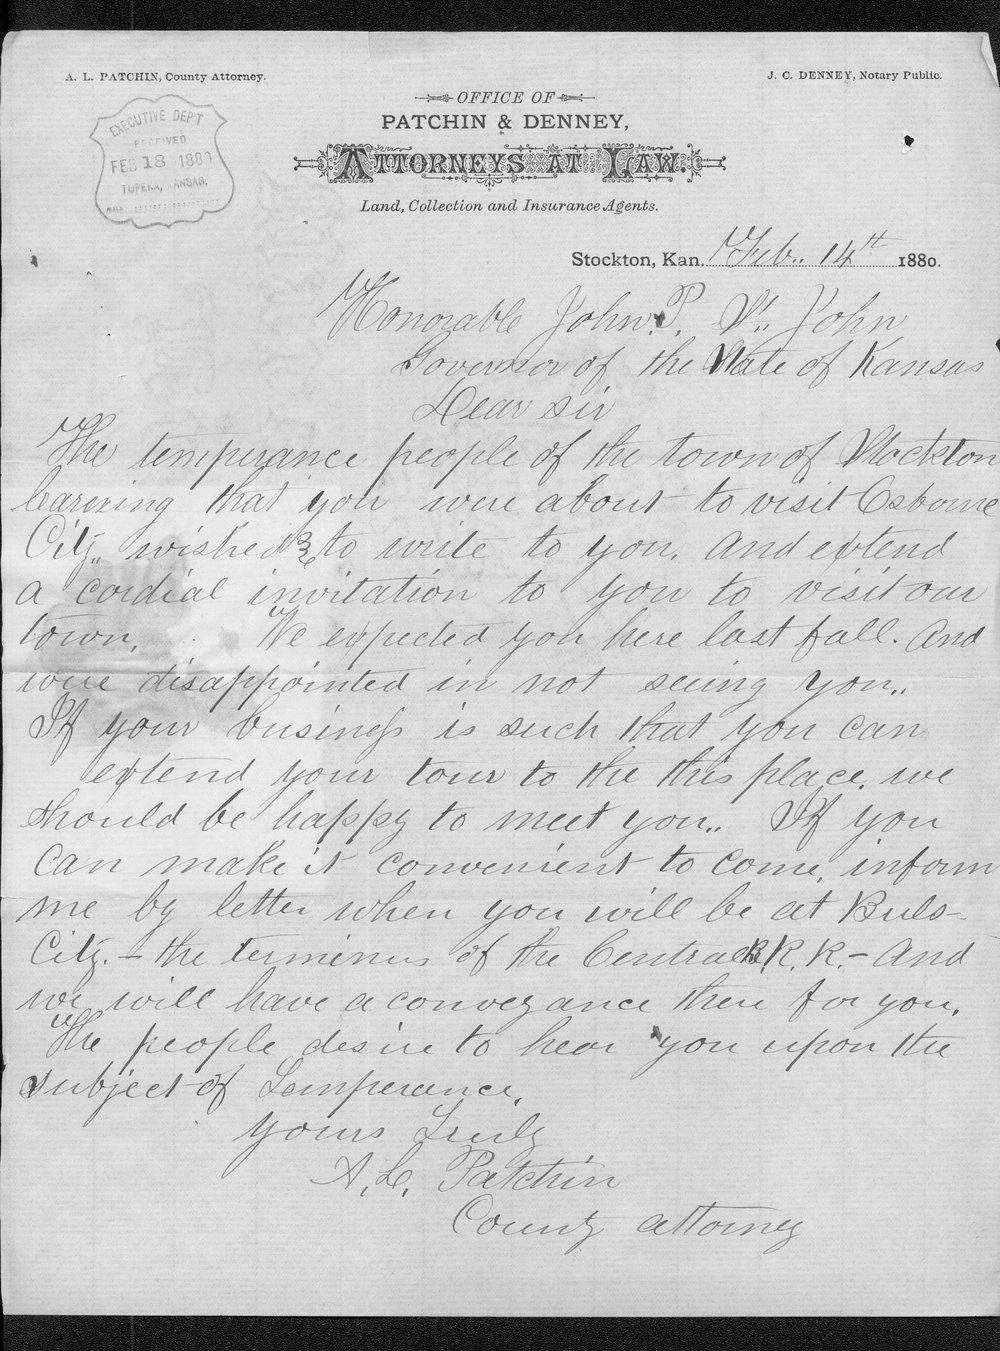 A. L. Patchin to Governor John St. John